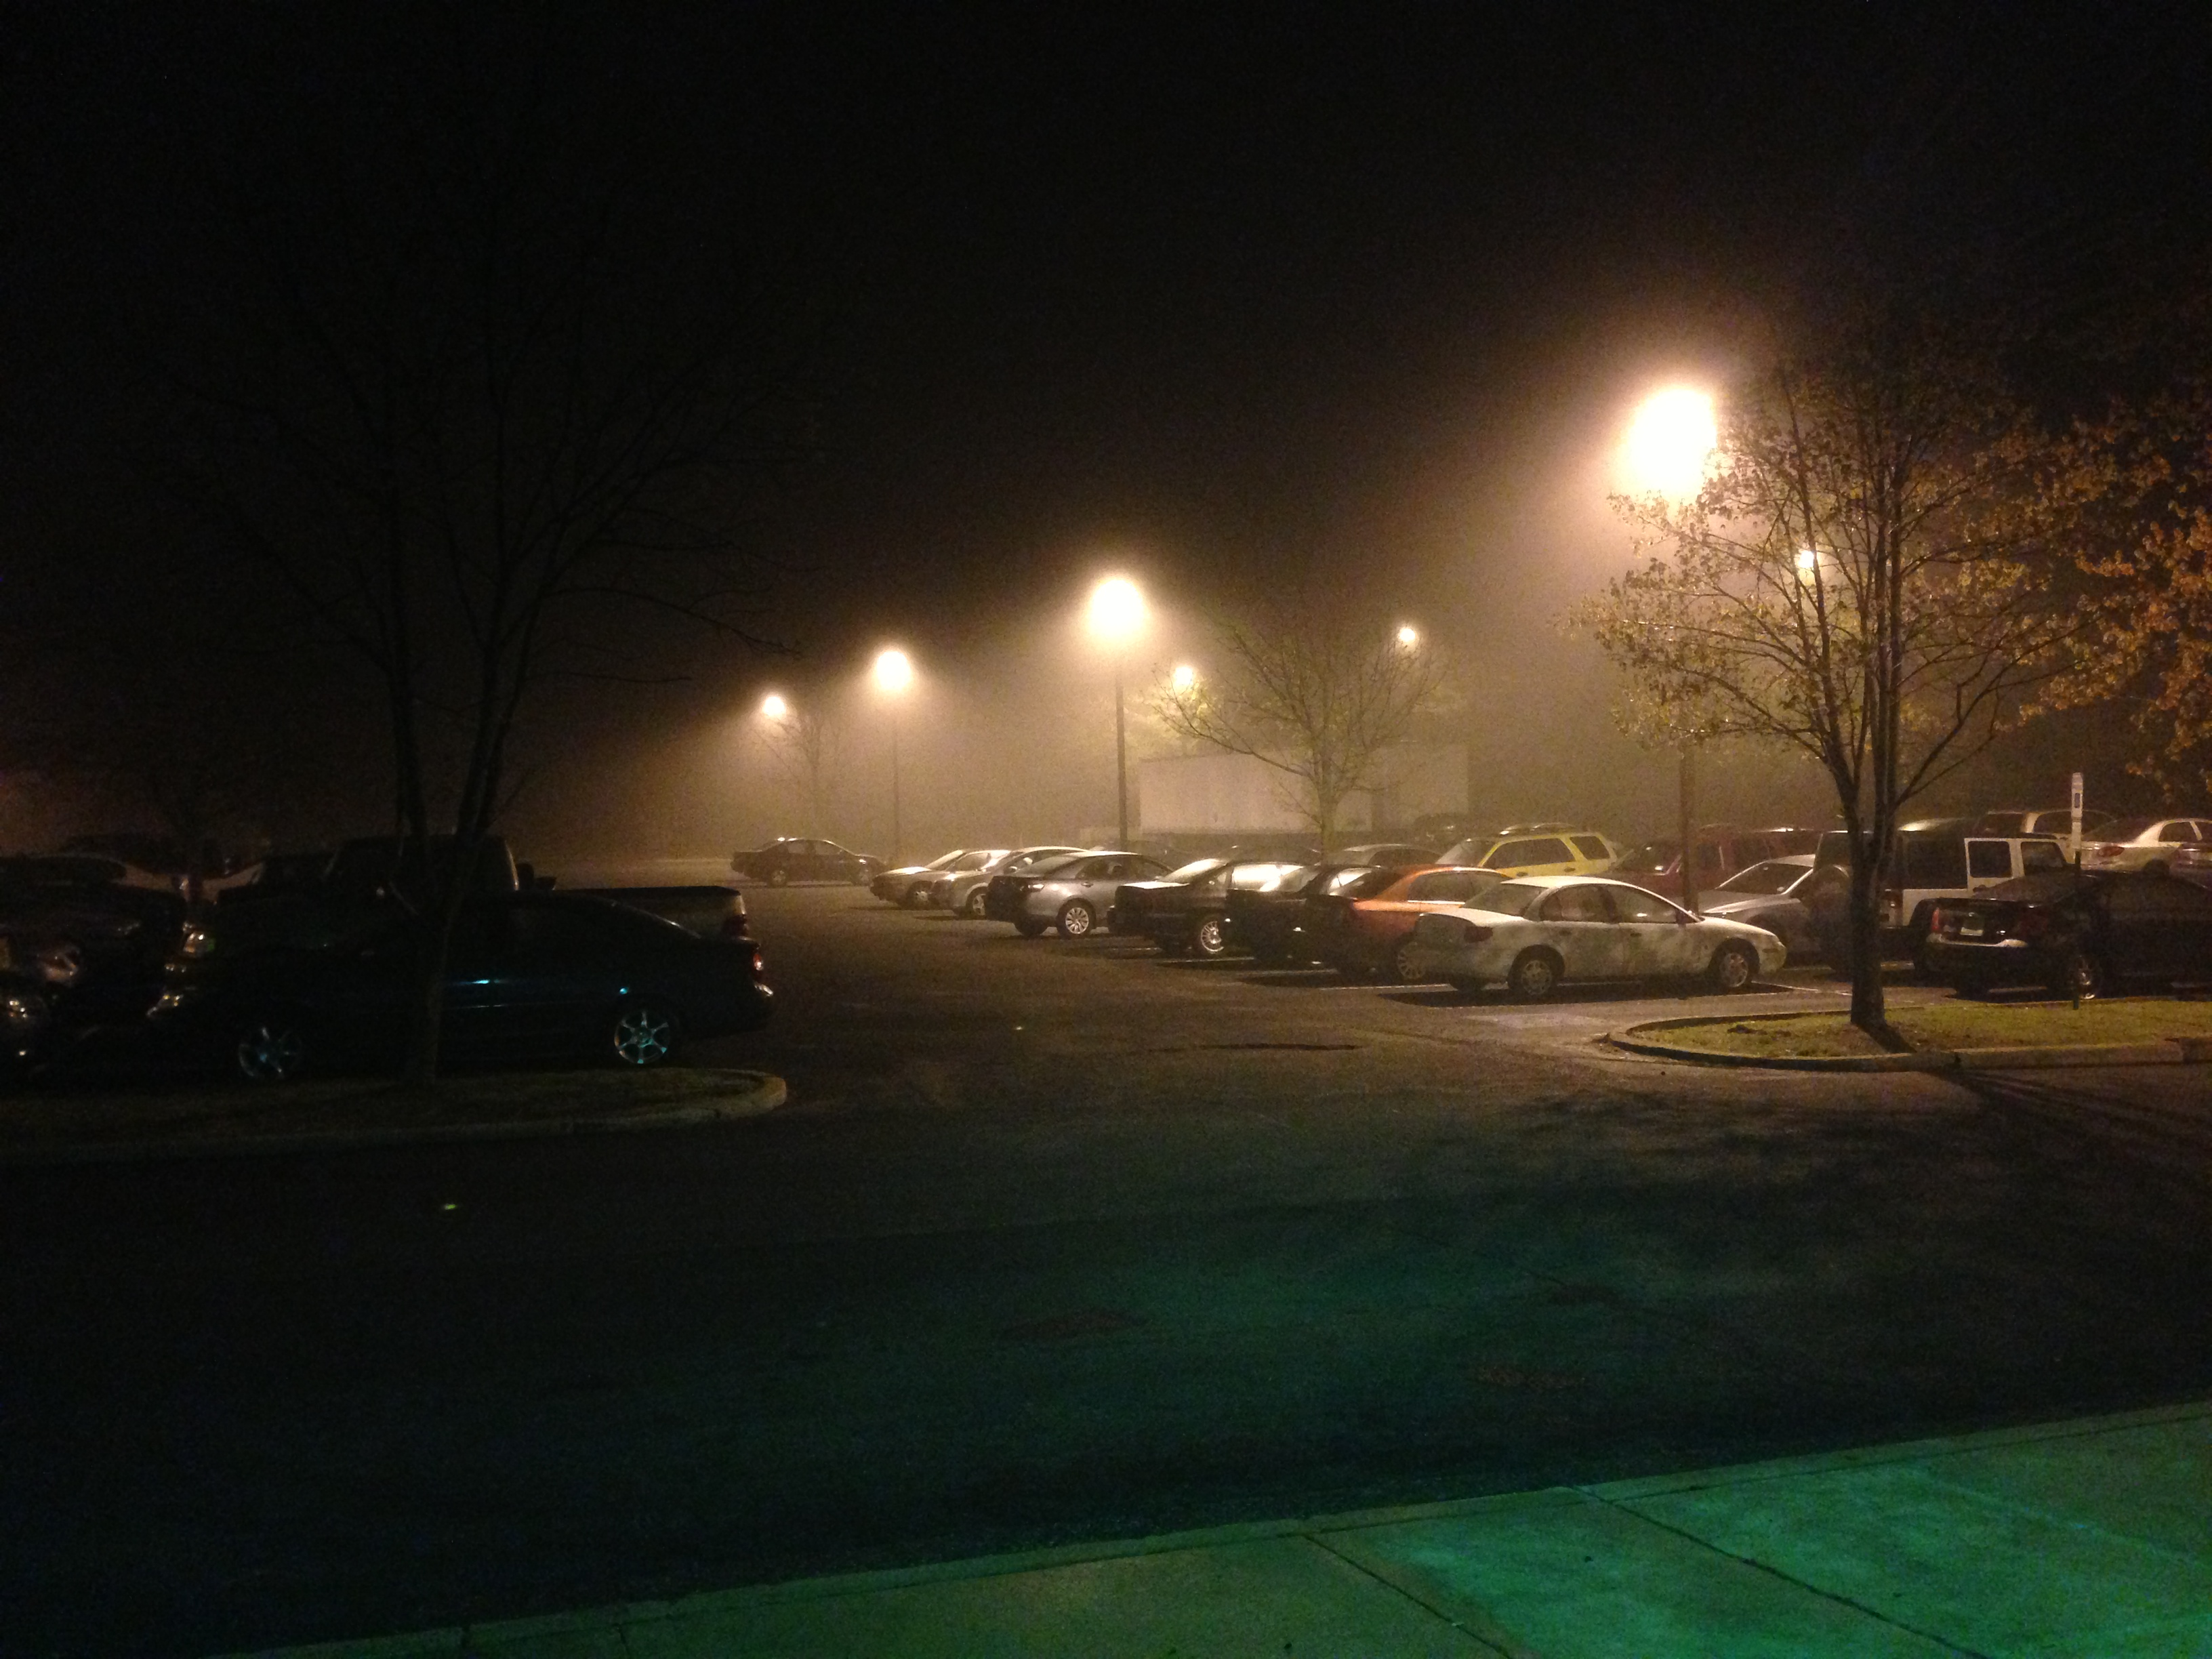 File 2017 05 10 02 48 Fog In Parking Lot 98d Near The Starkey Apartments On Cook Douglass Campus Of Rutgers University Jpg